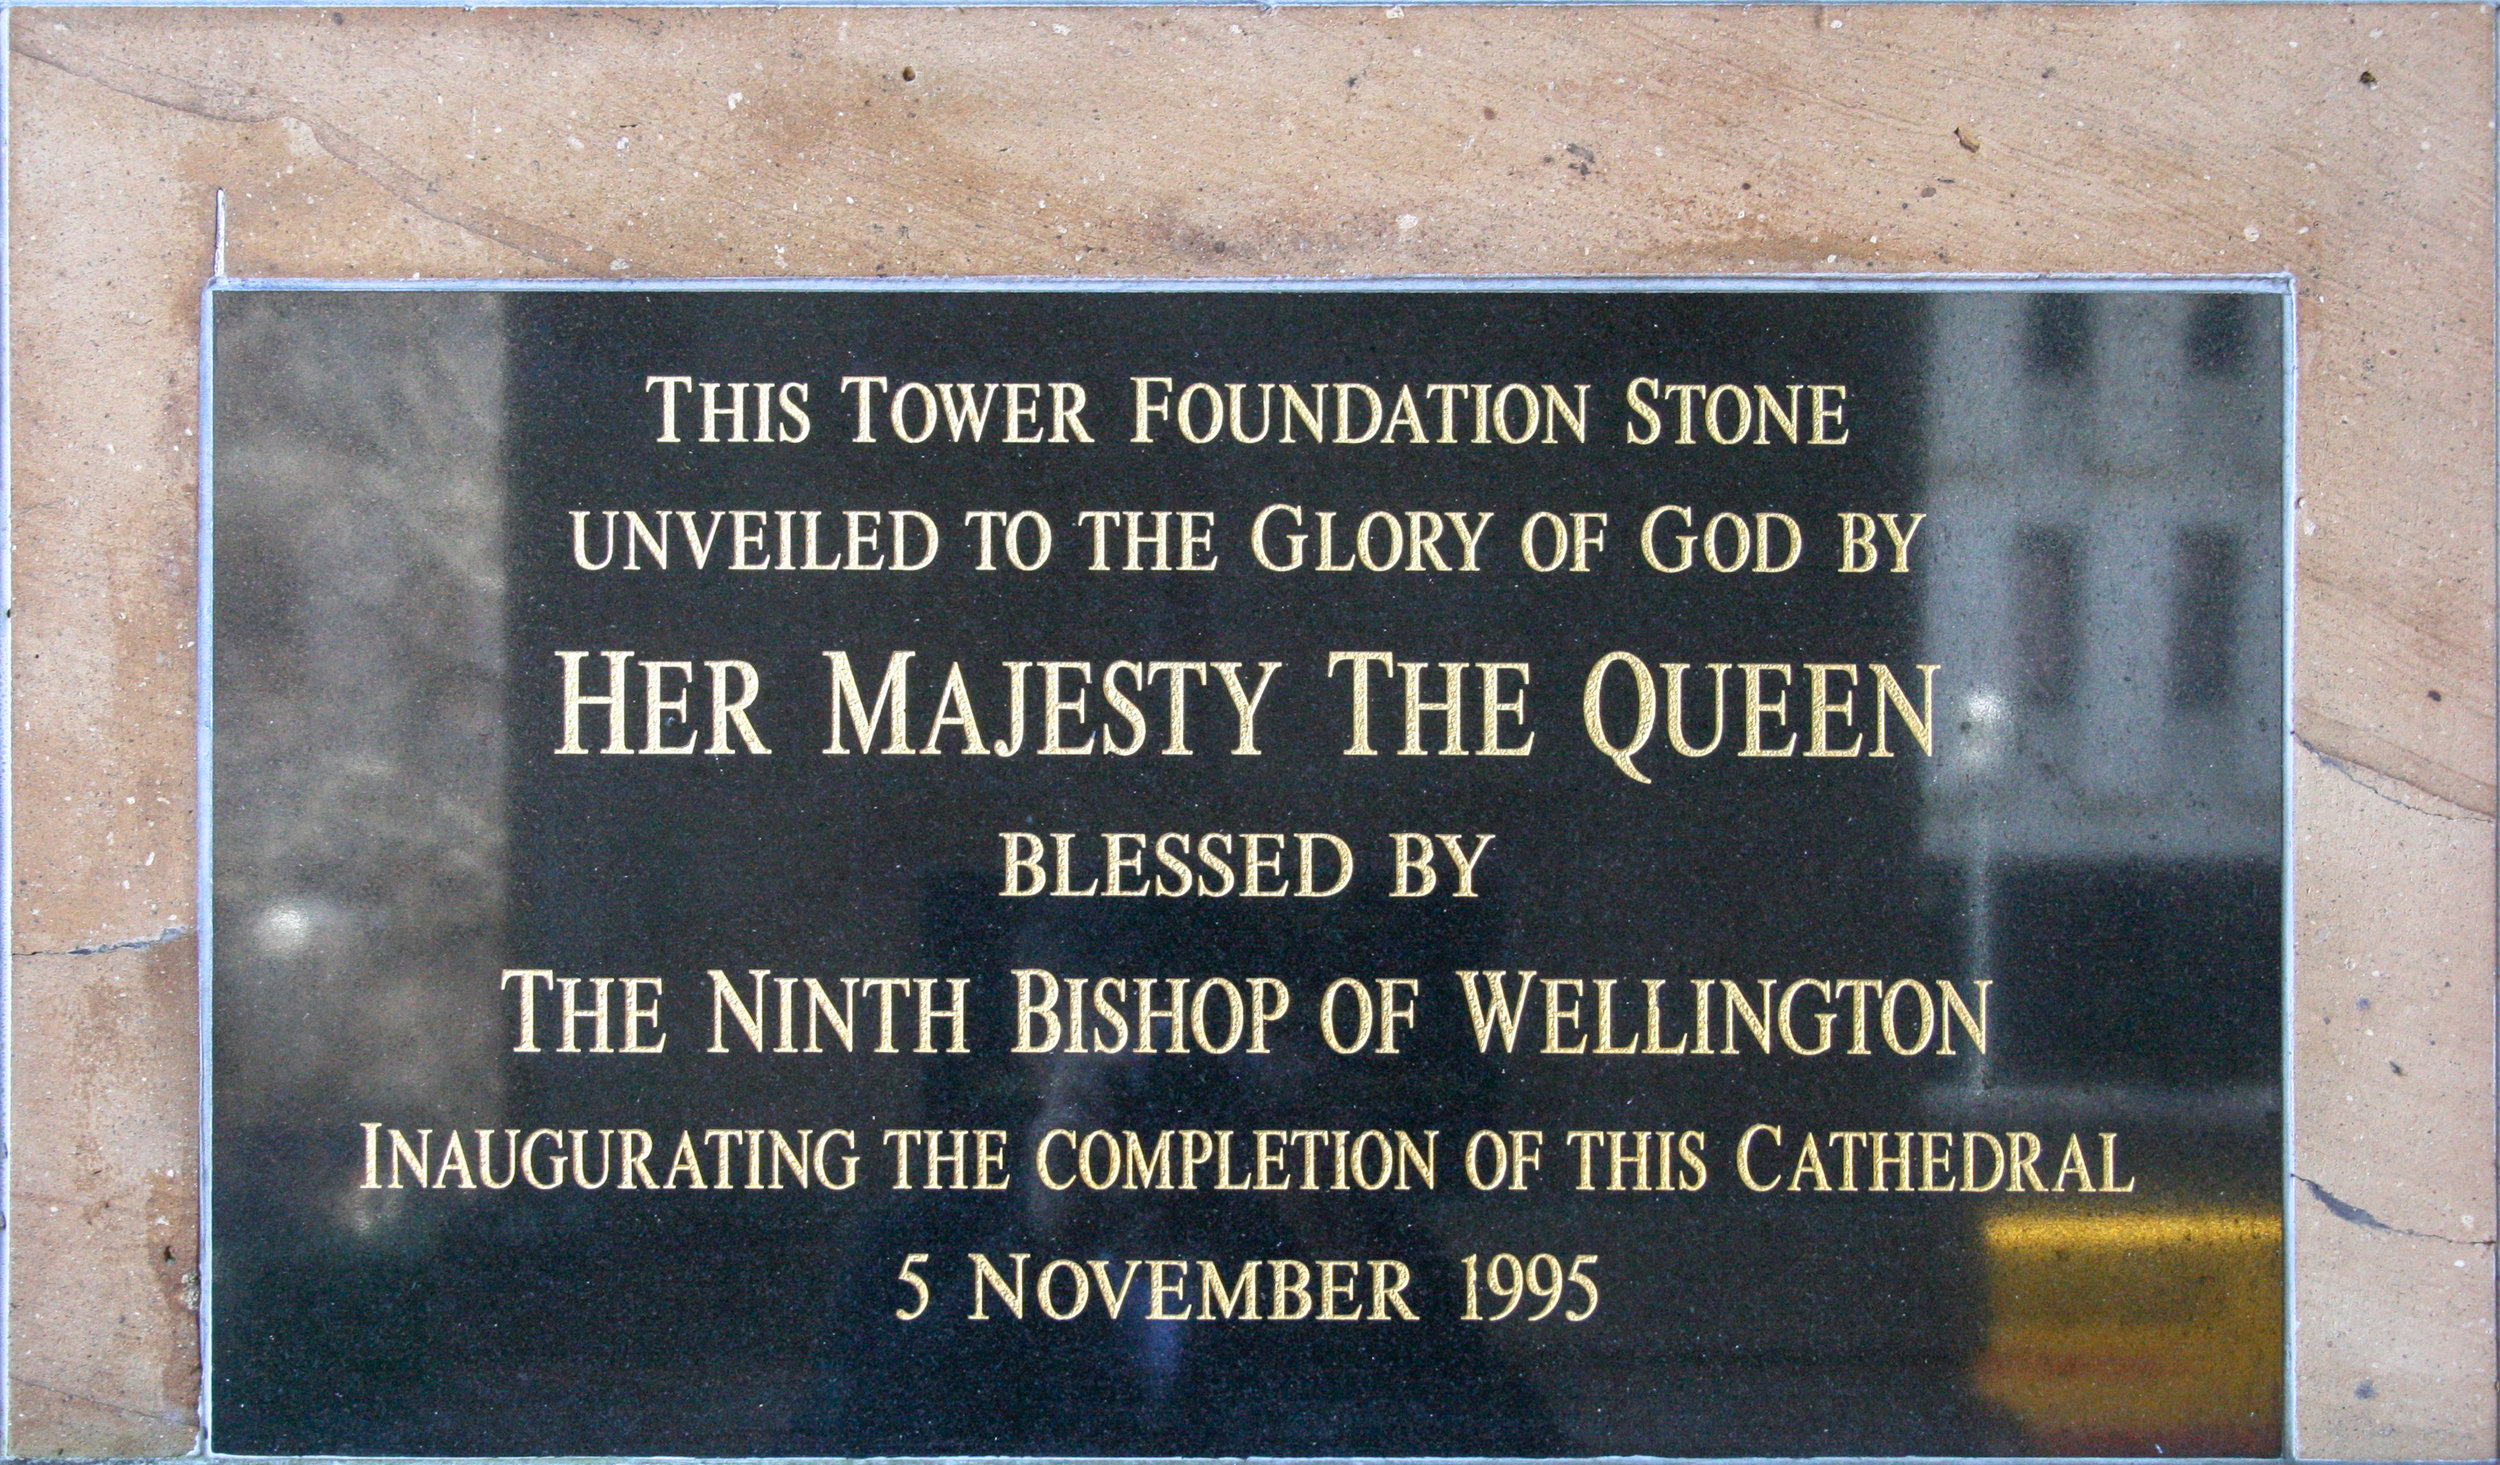 plaque-tower-foundation-stone-1995.jpg